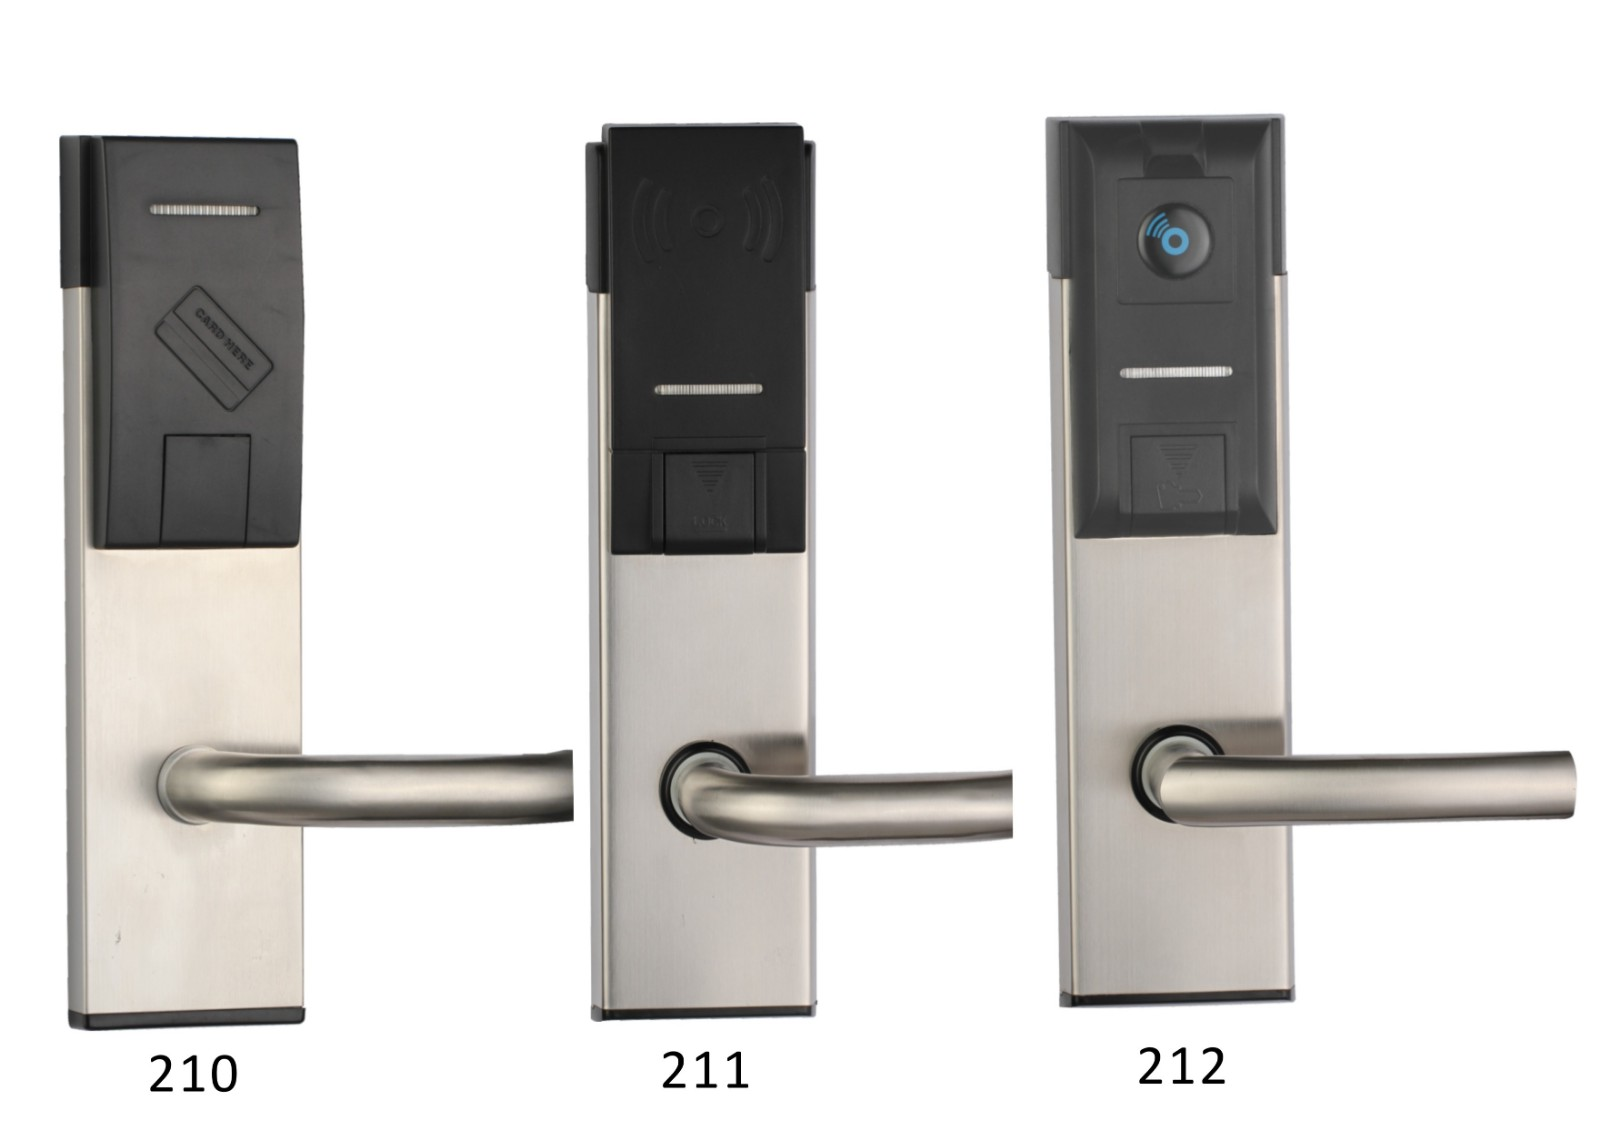 Electronic key card access locks stainless steel for home-1